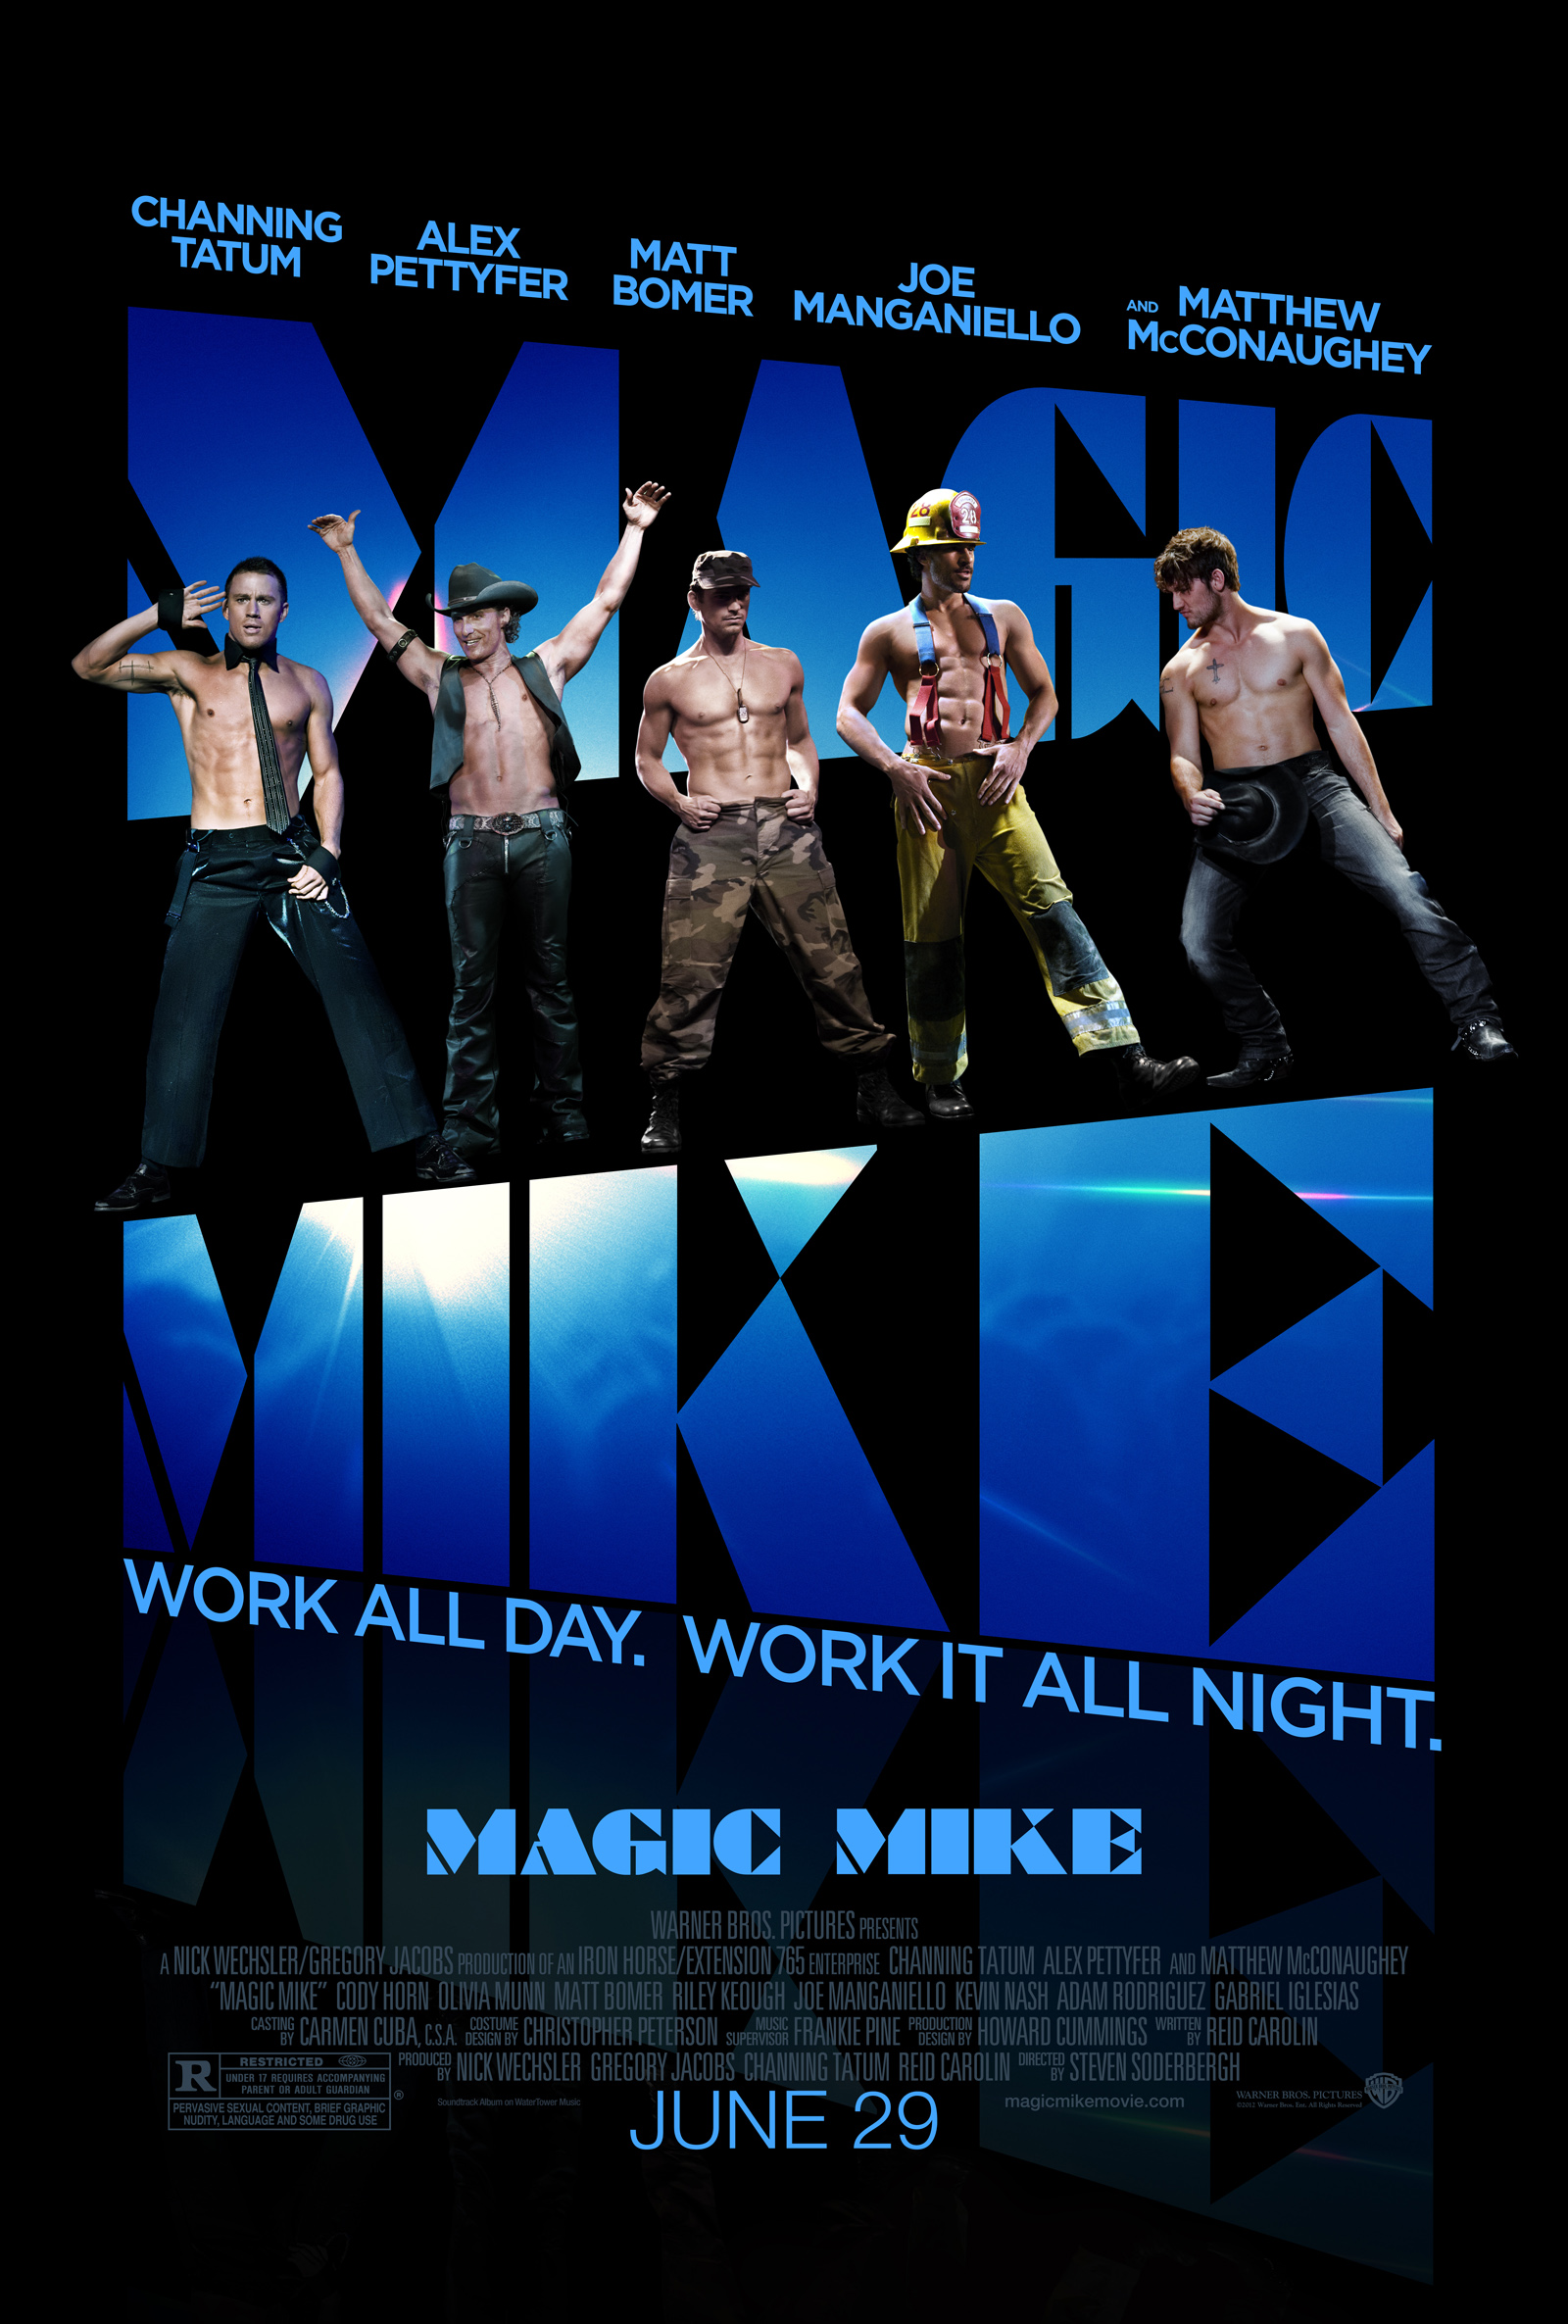 Magic Mike poster